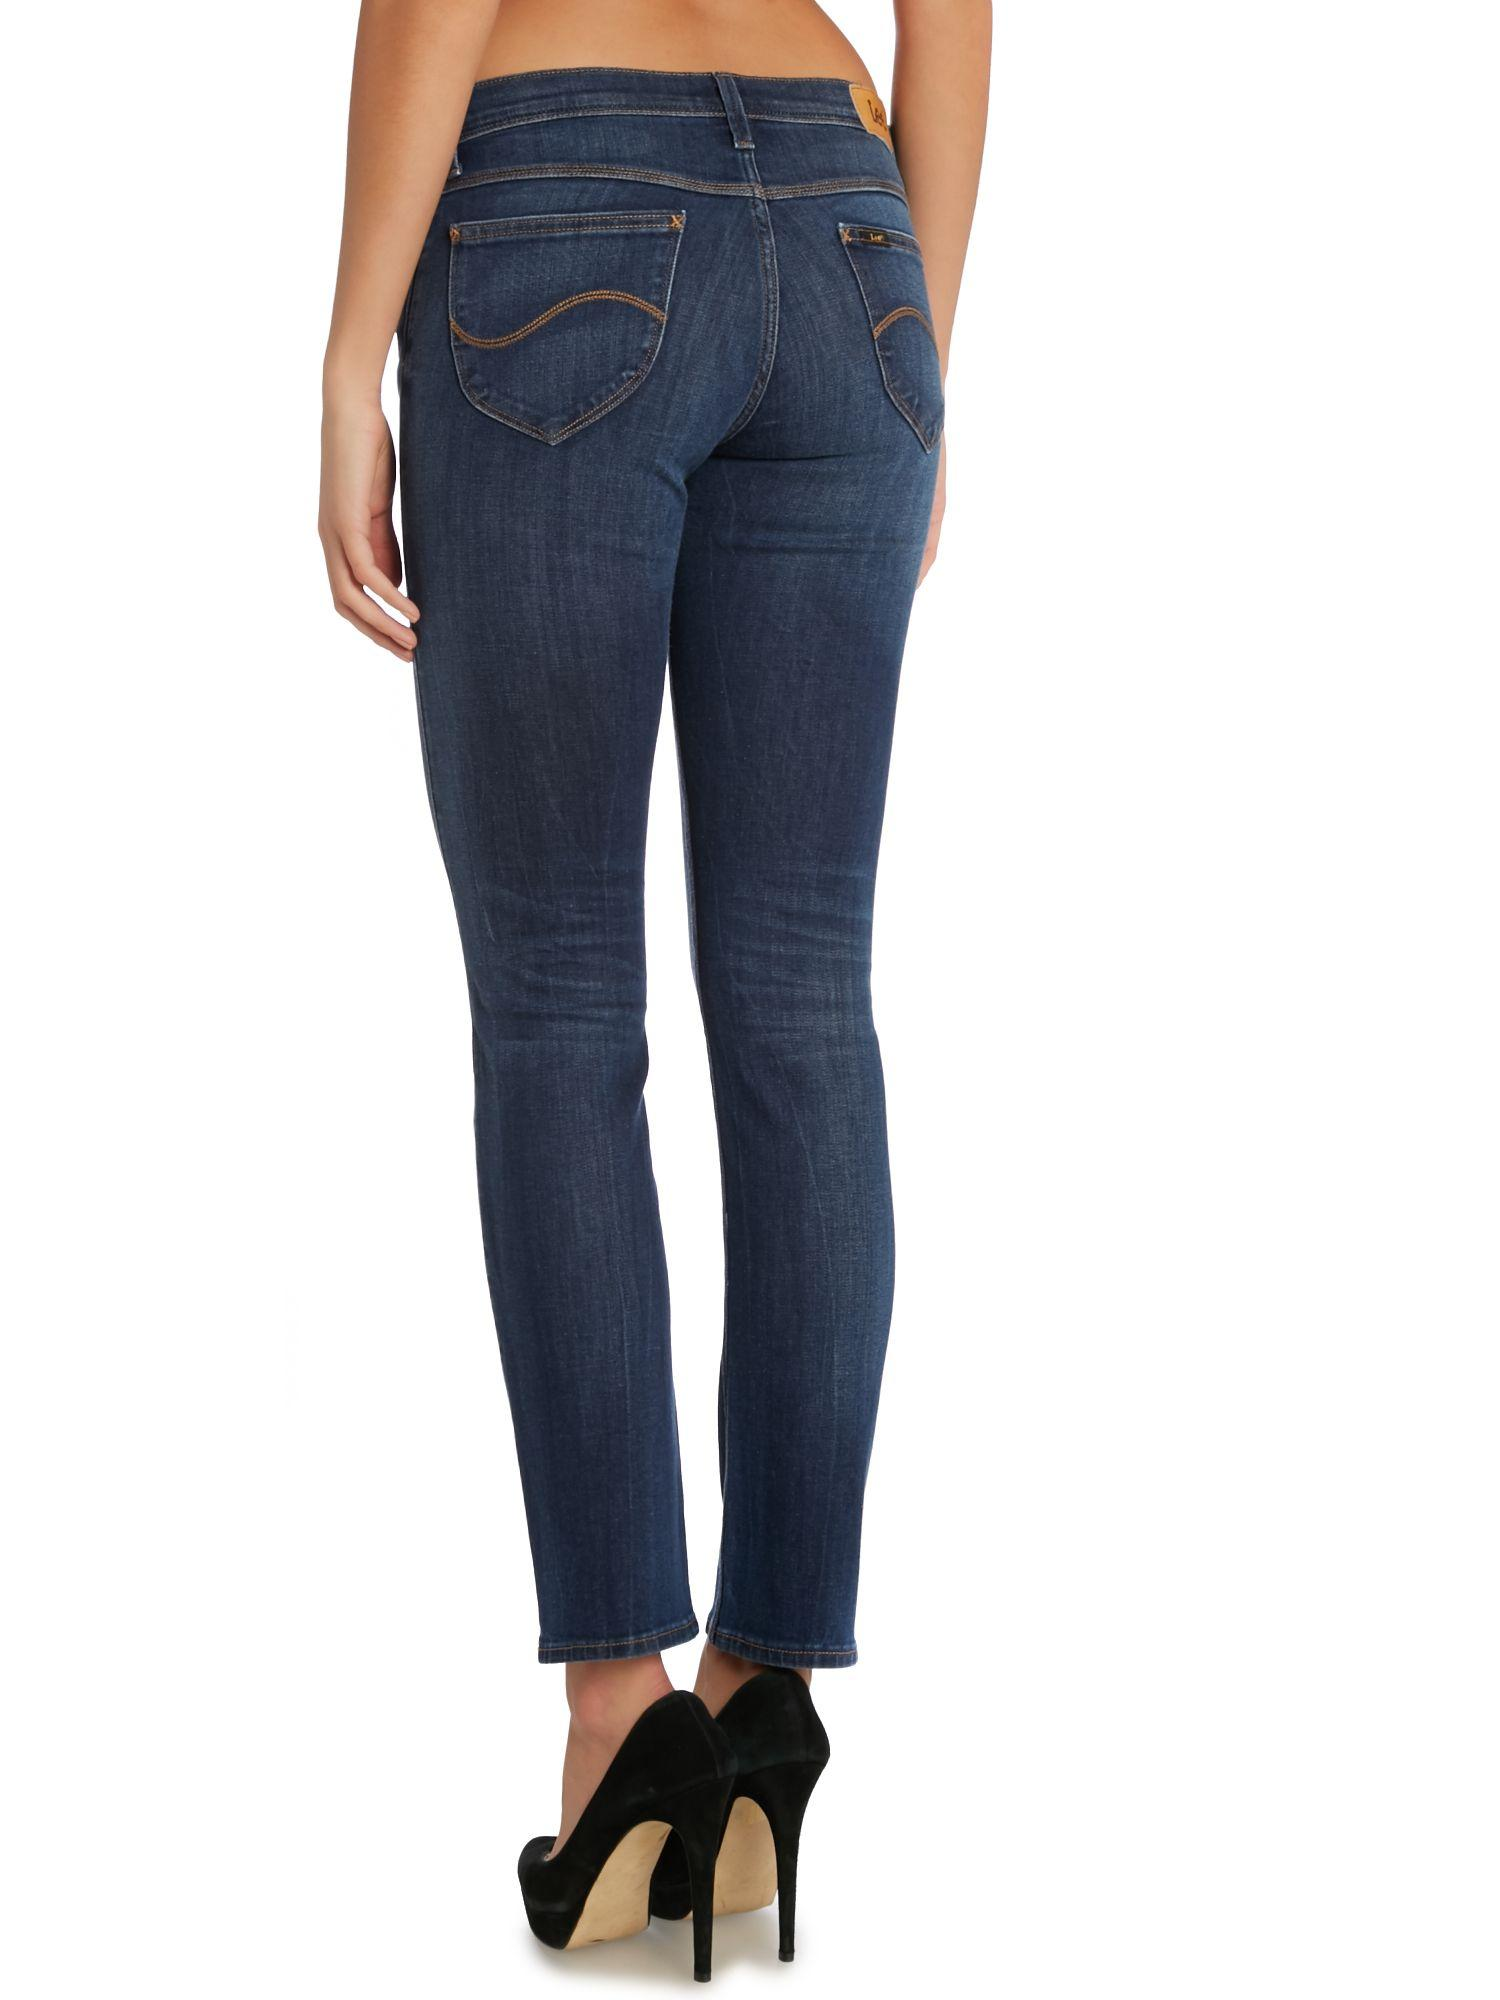 Lee Jeans Denim Jade Slim Jean in Blue